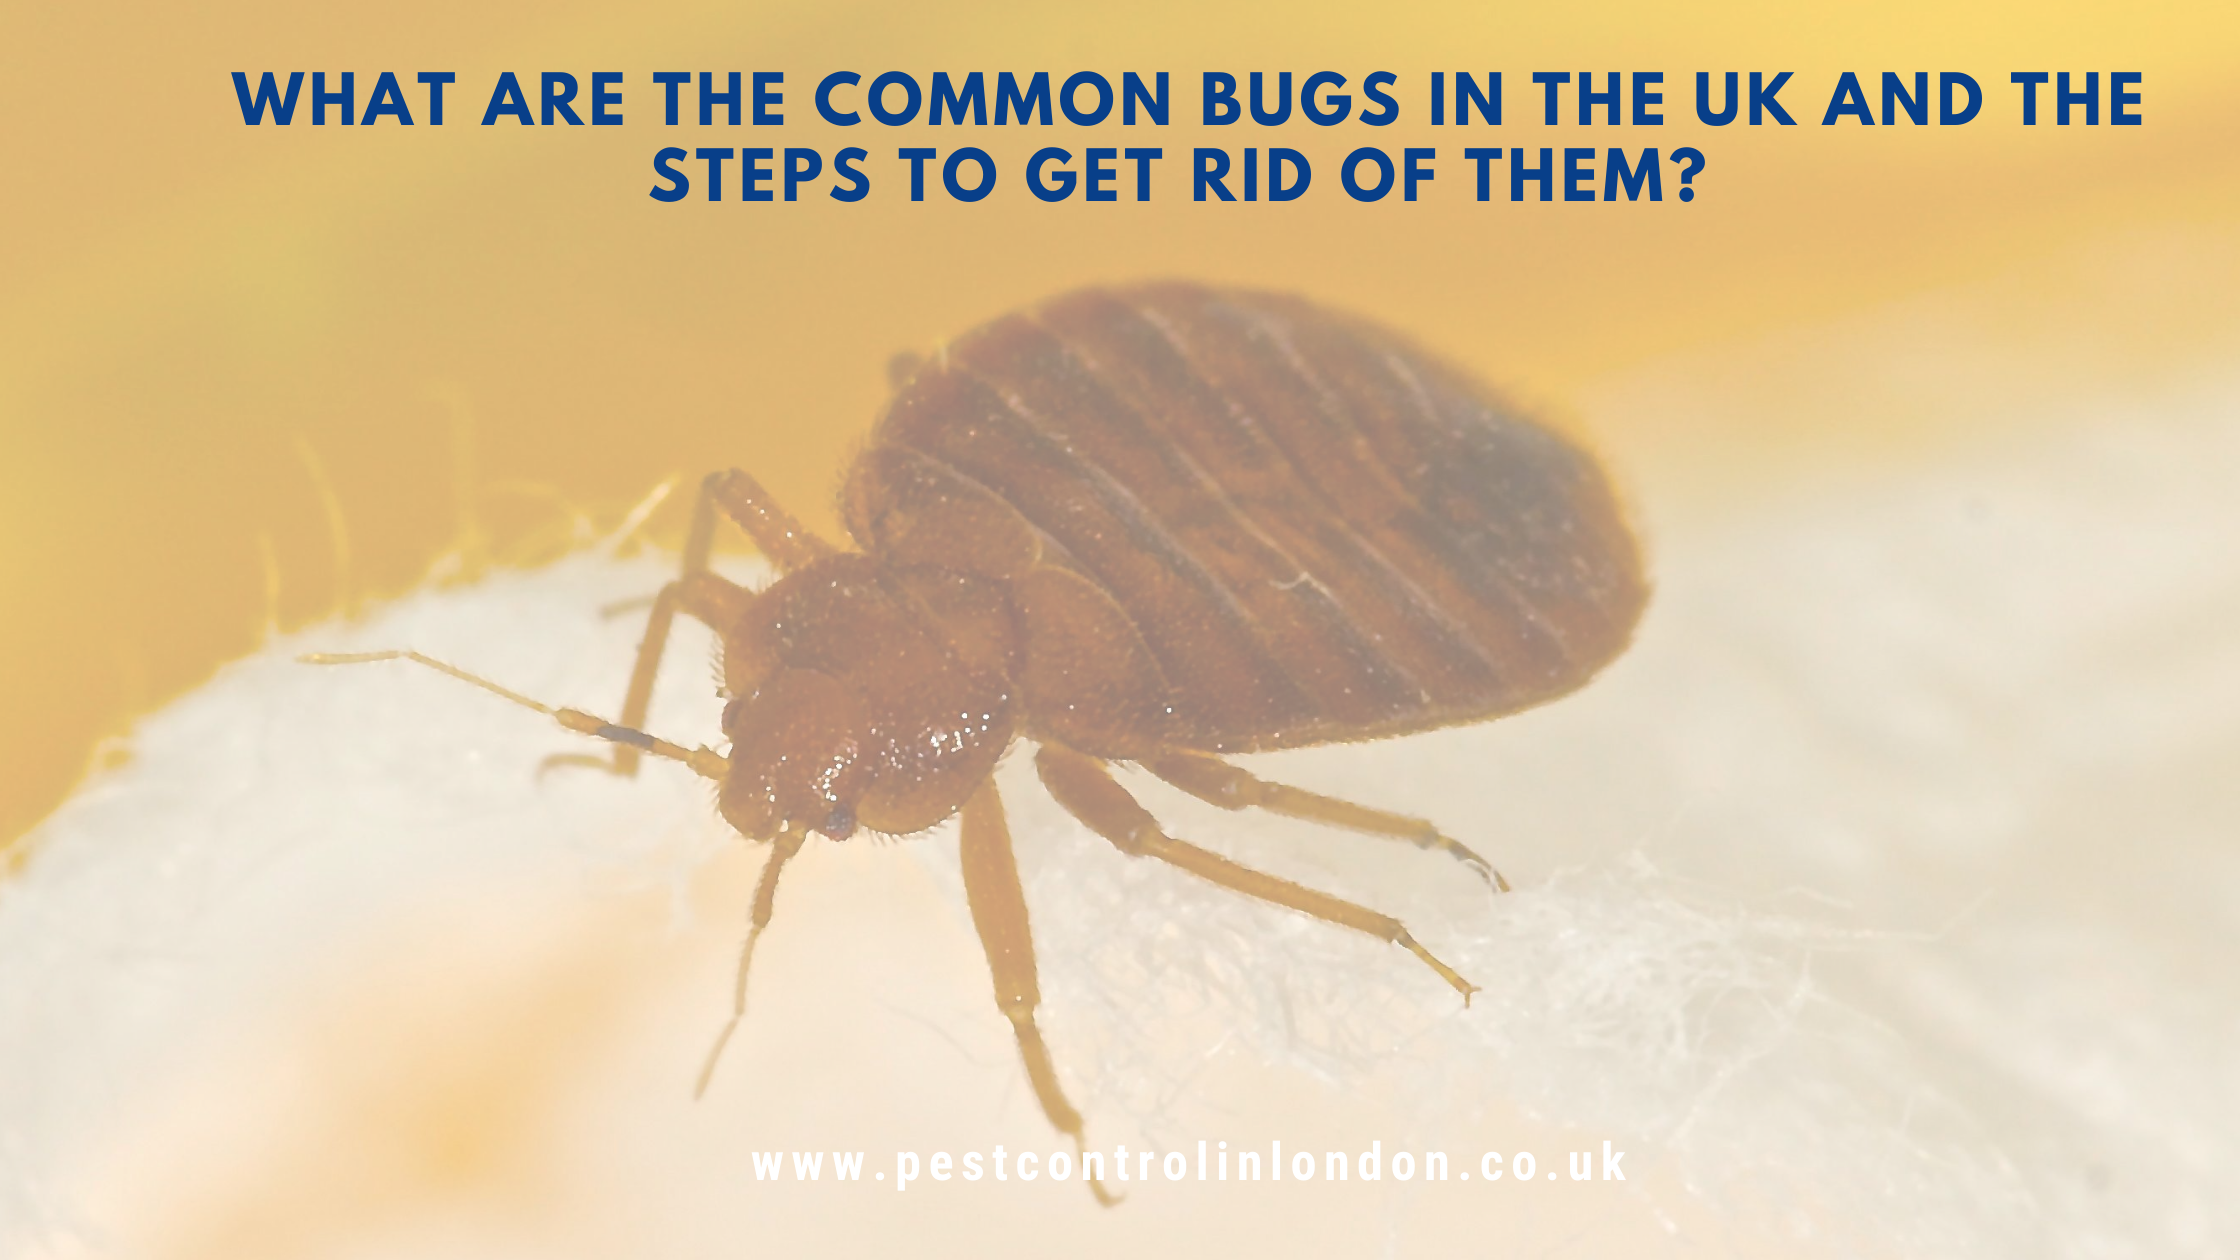 What-are-the-common-bugs-in-the-UK-and-the-steps-to-get-rid-of-them_-